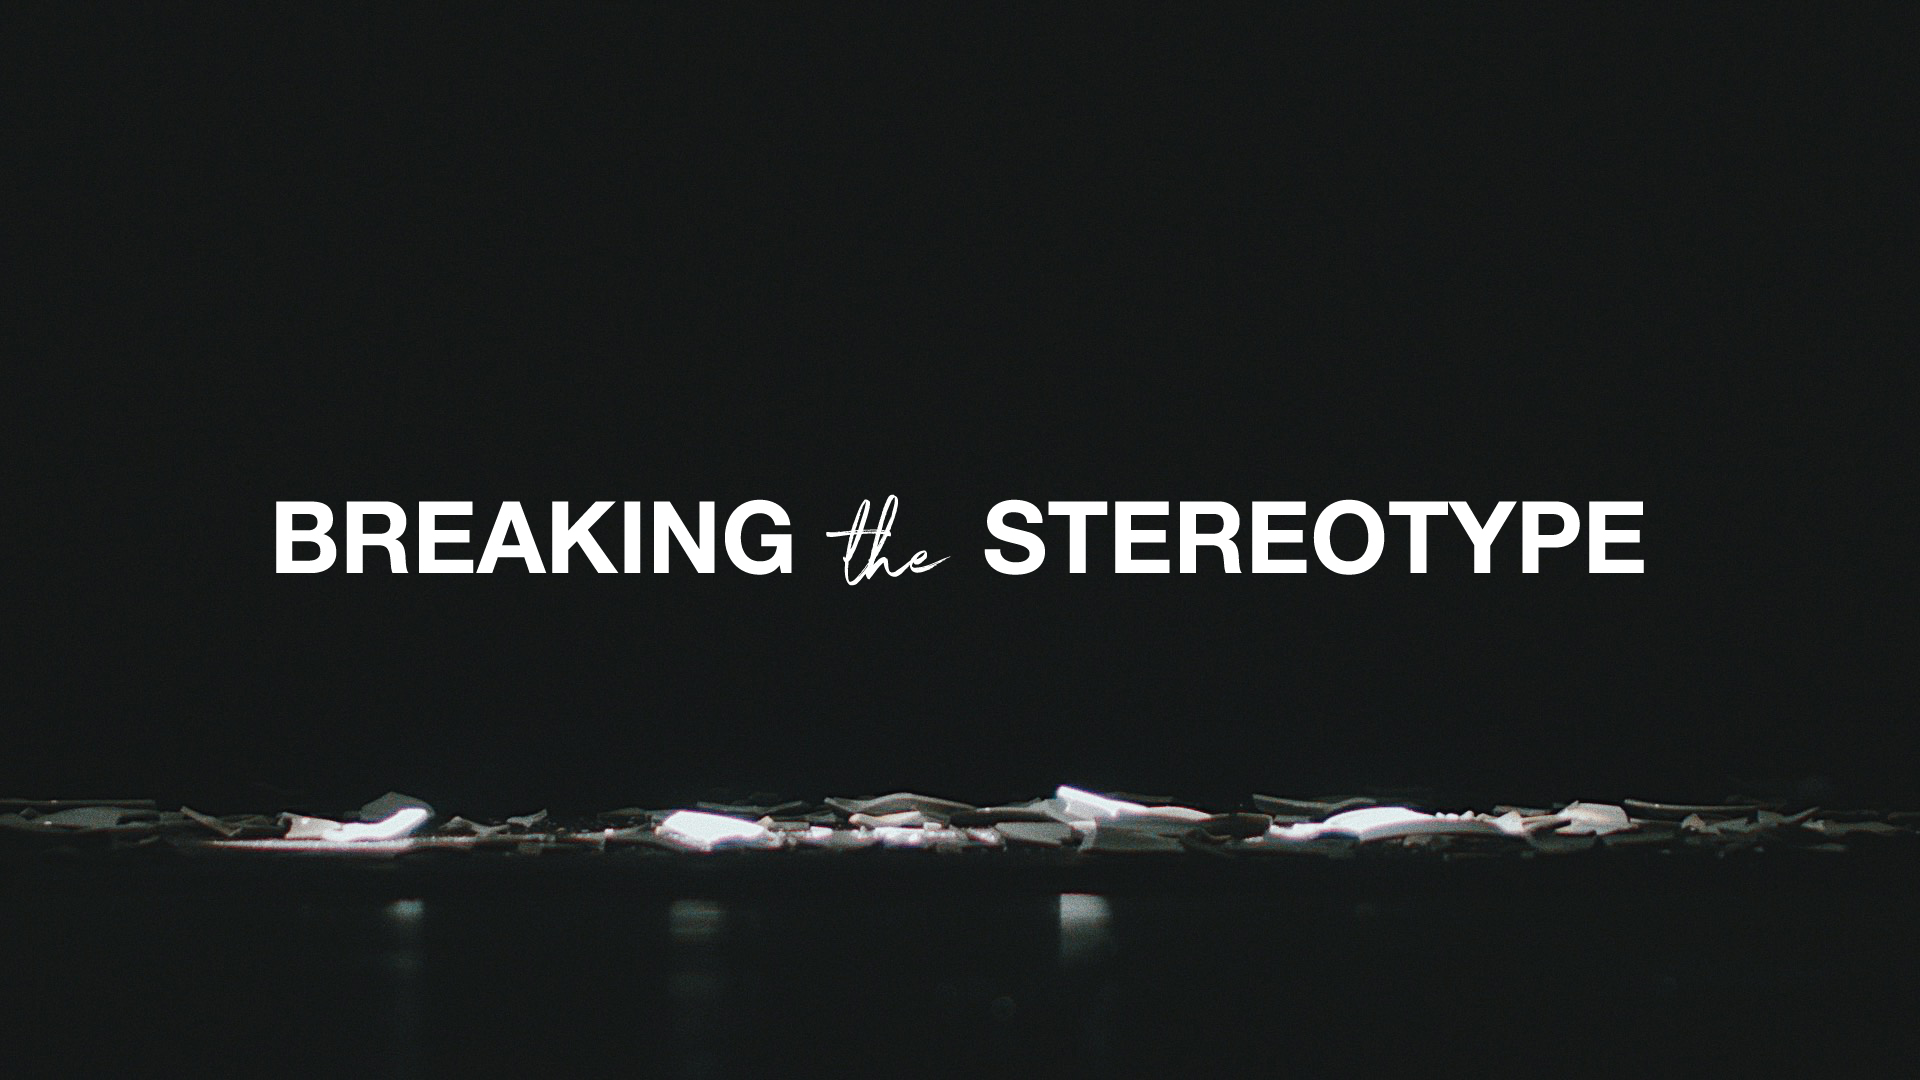 Breaking-the-Stereotype-Series-Graphic-16x9 (1).jpg